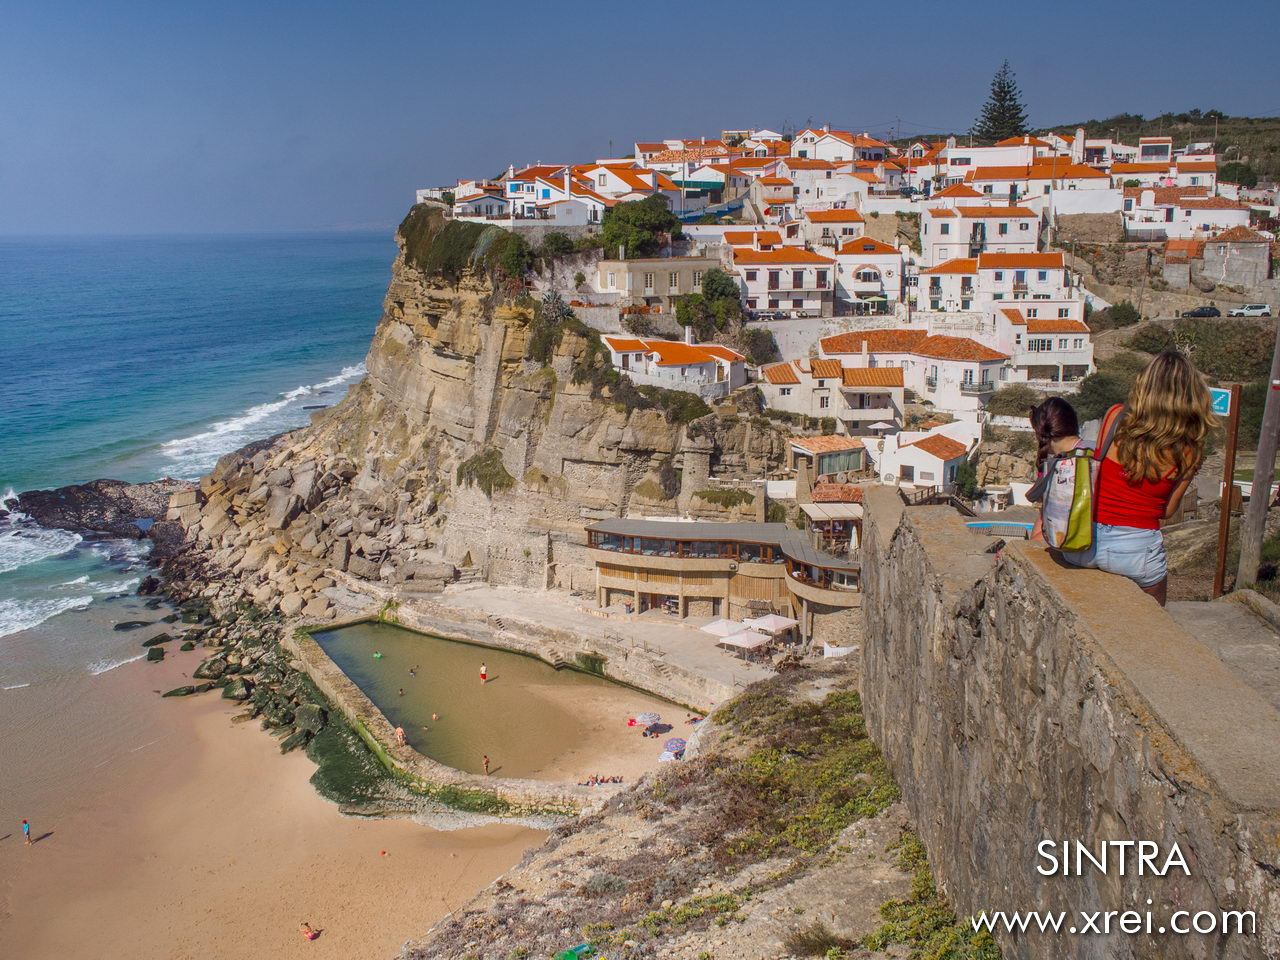 Azenhas do Mar is a village on the coast of the municipality of Sintra, parish of Colares. Azenhas do Mar is well known due to the beach where there is a natural ocean swimming pool, being one of the most photographed places for postcards in Portugal. The name Azenhas means Water Mill.